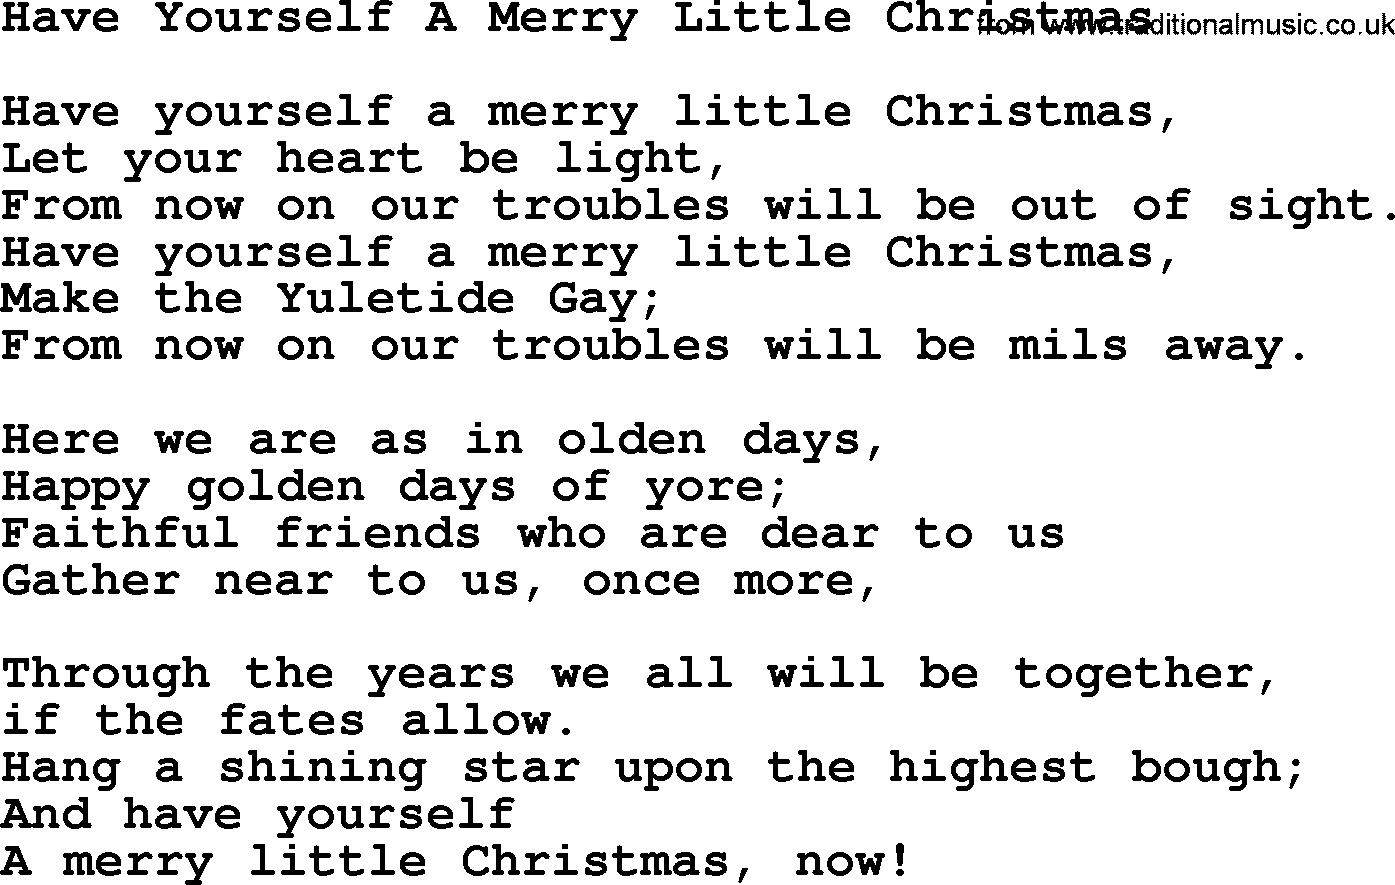 Merry Little Christmas Lyrics.Catholic Hymns Song Have Yourself A Merry Little Christmas